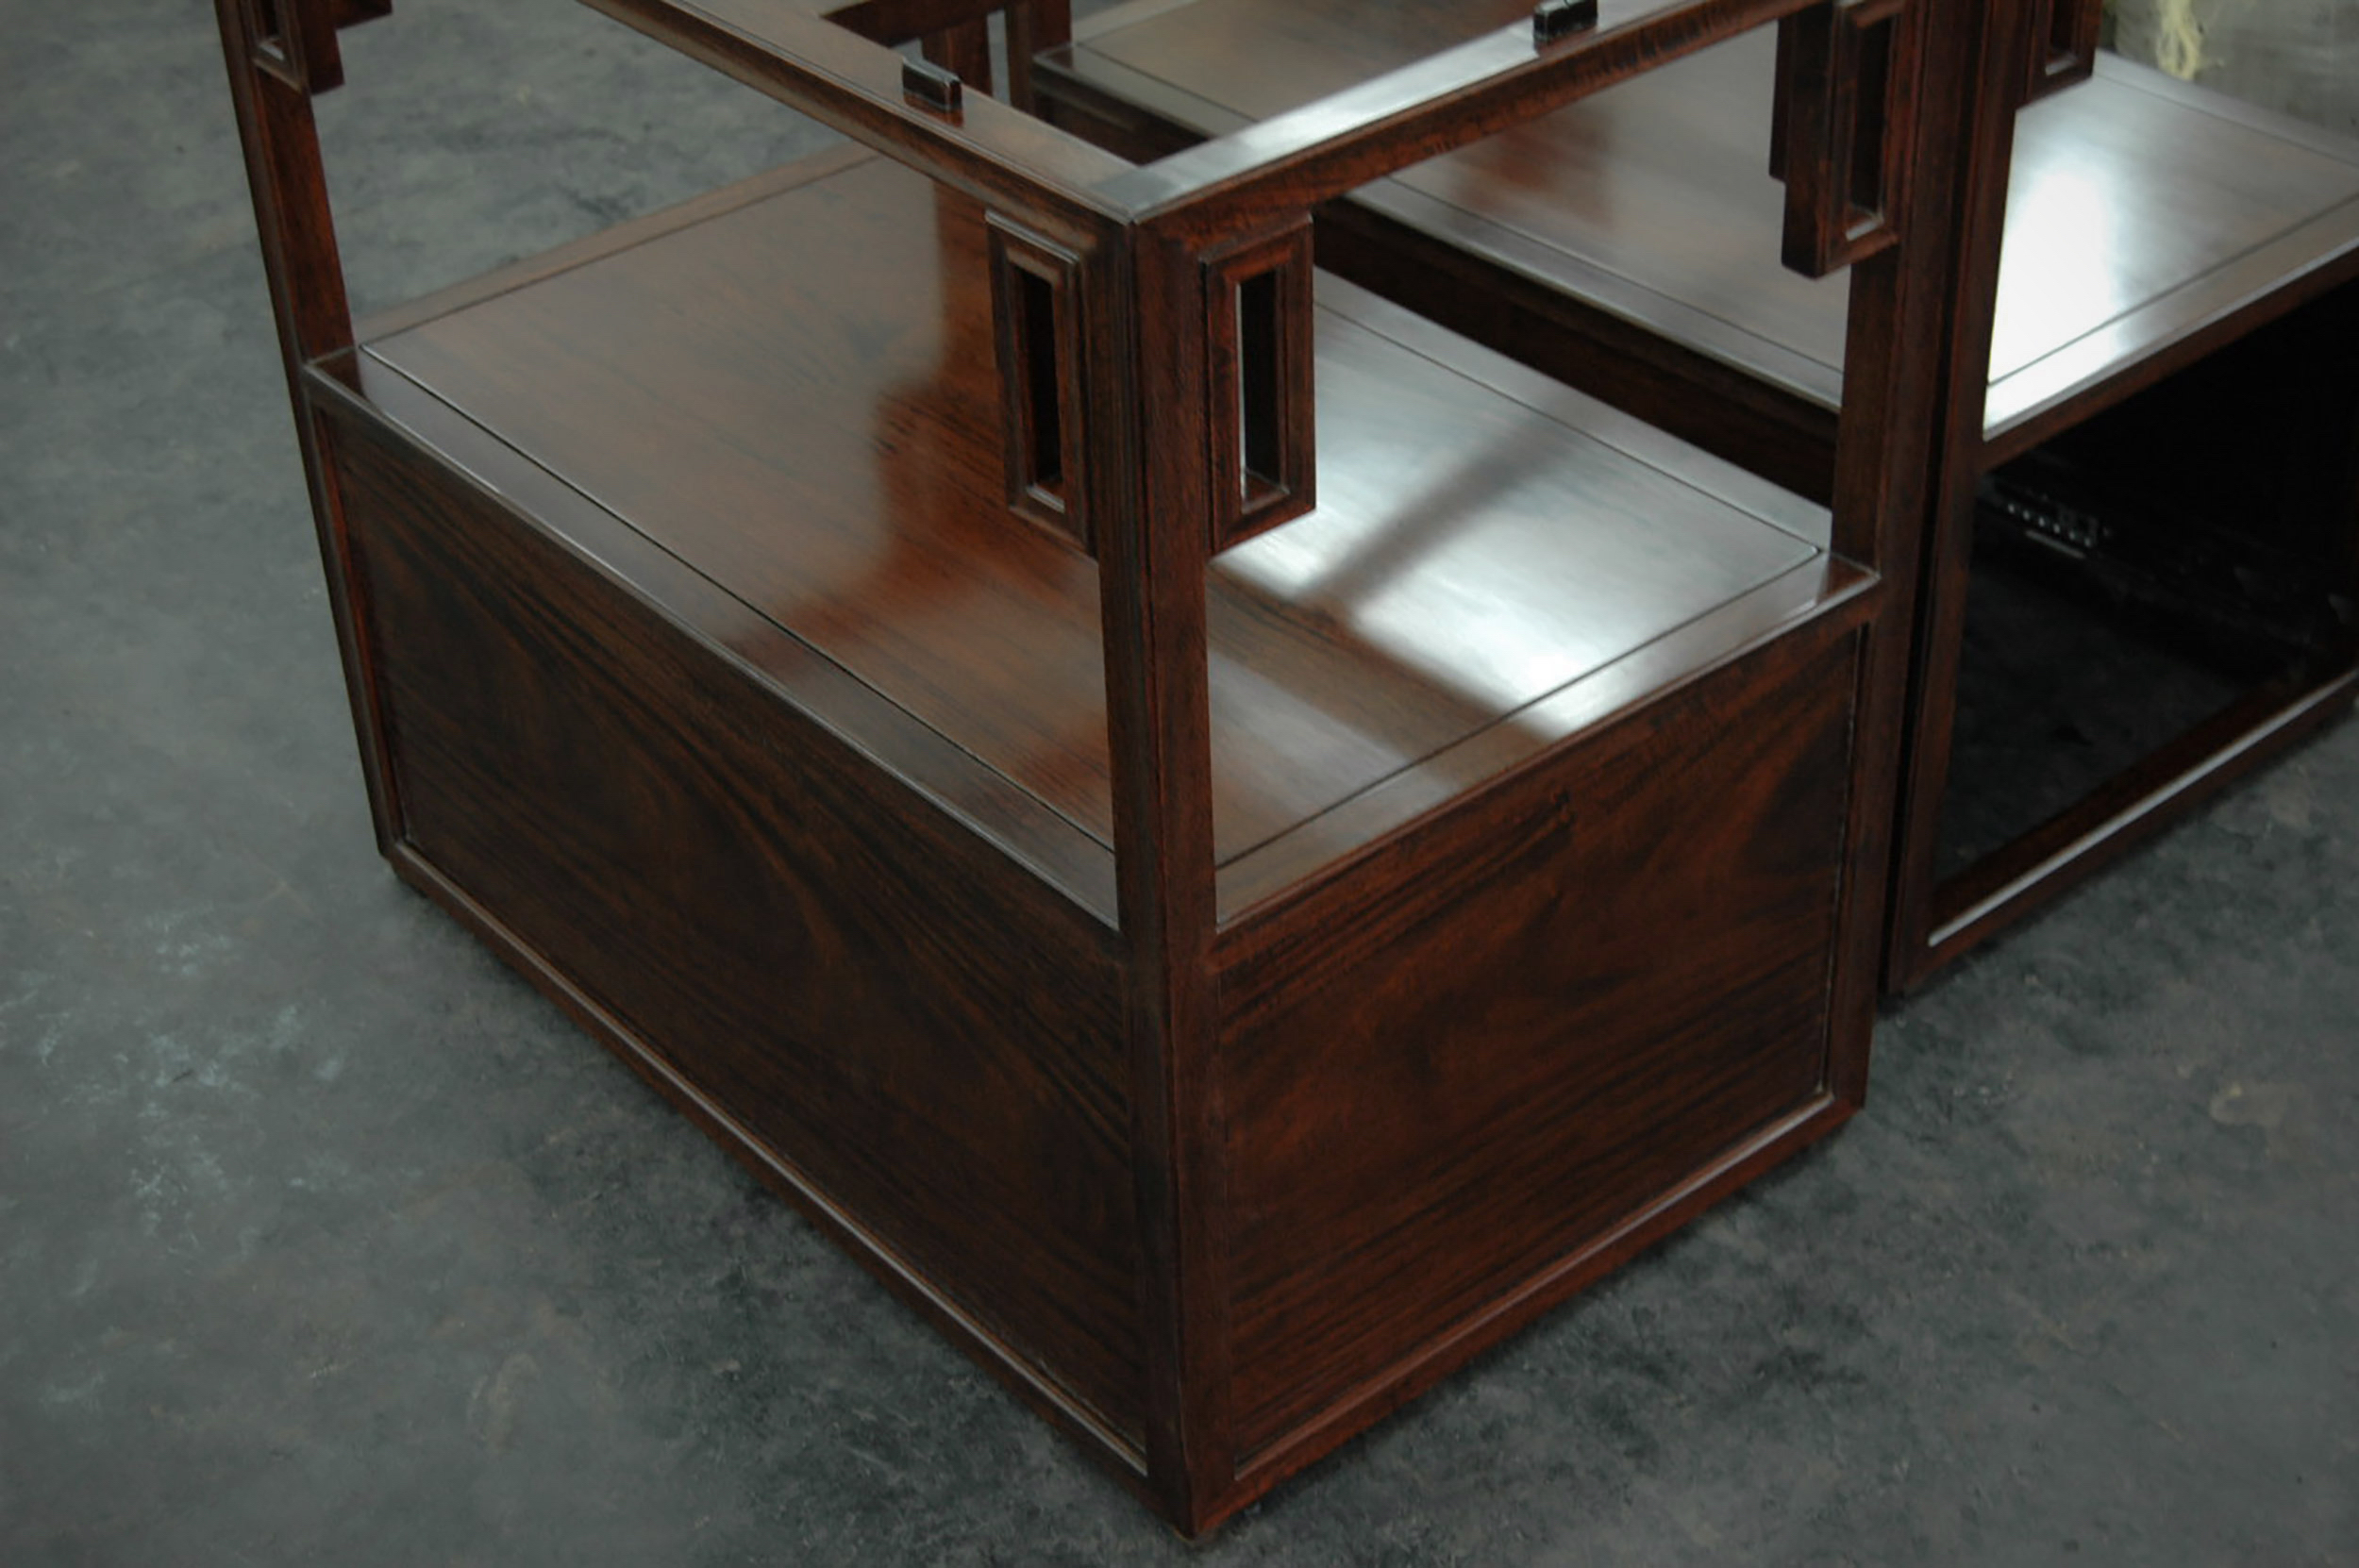 ....bespoke furniture : artisan crafting photos..特别定制家具 : 公丈制作照片....